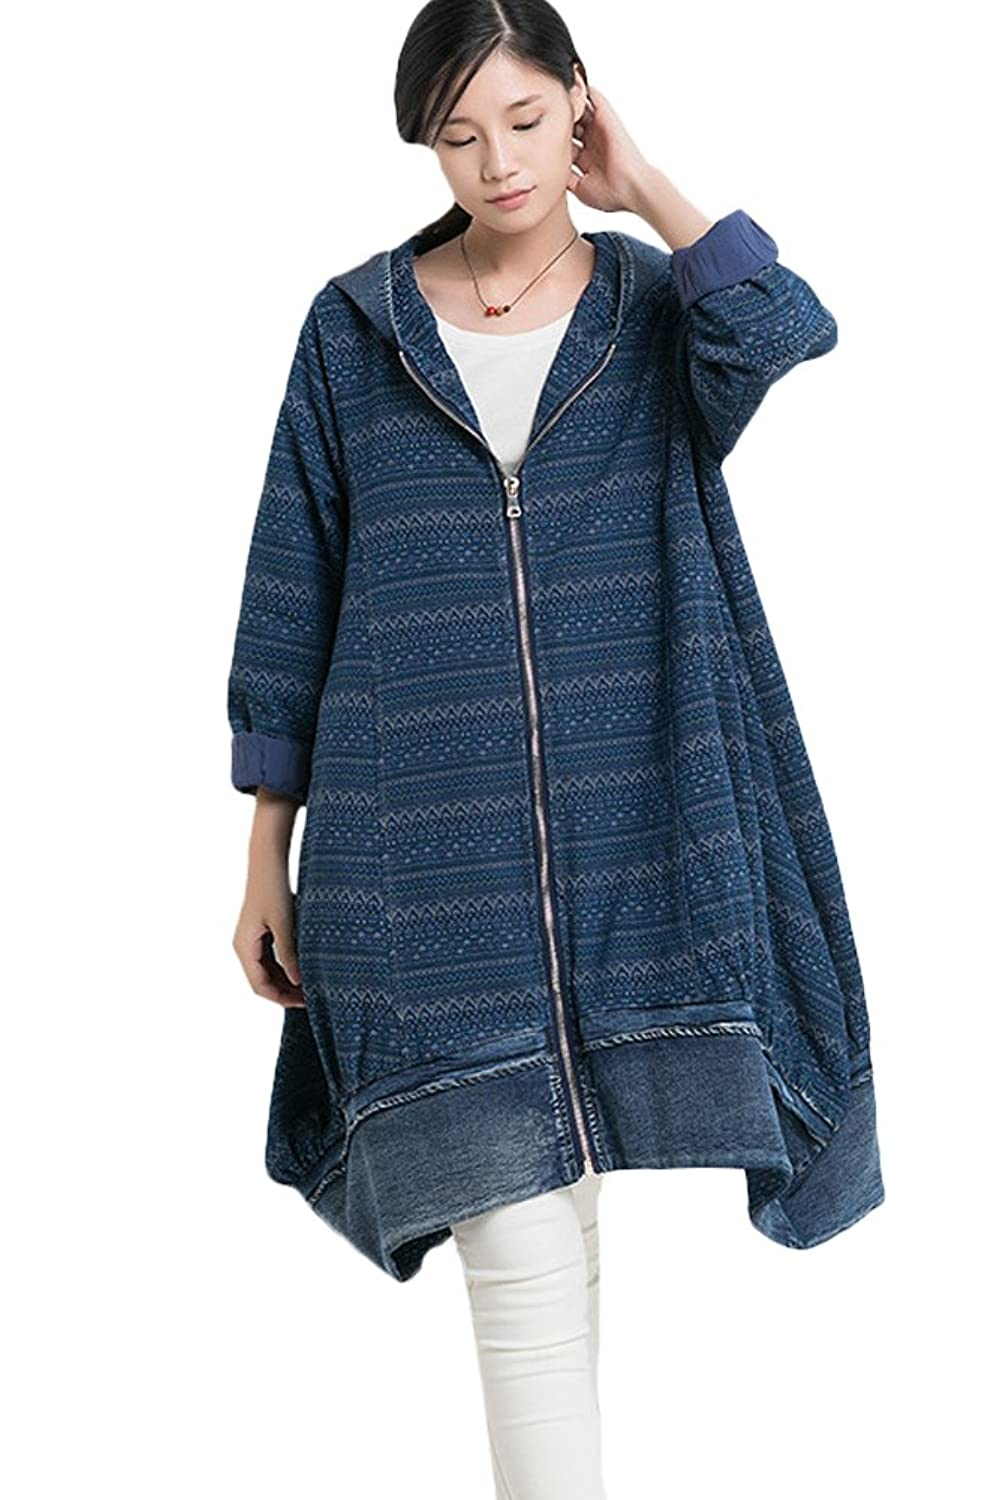 Minibee Women's Fashion Outwear Coat with Big Pockets Fit US M-XL